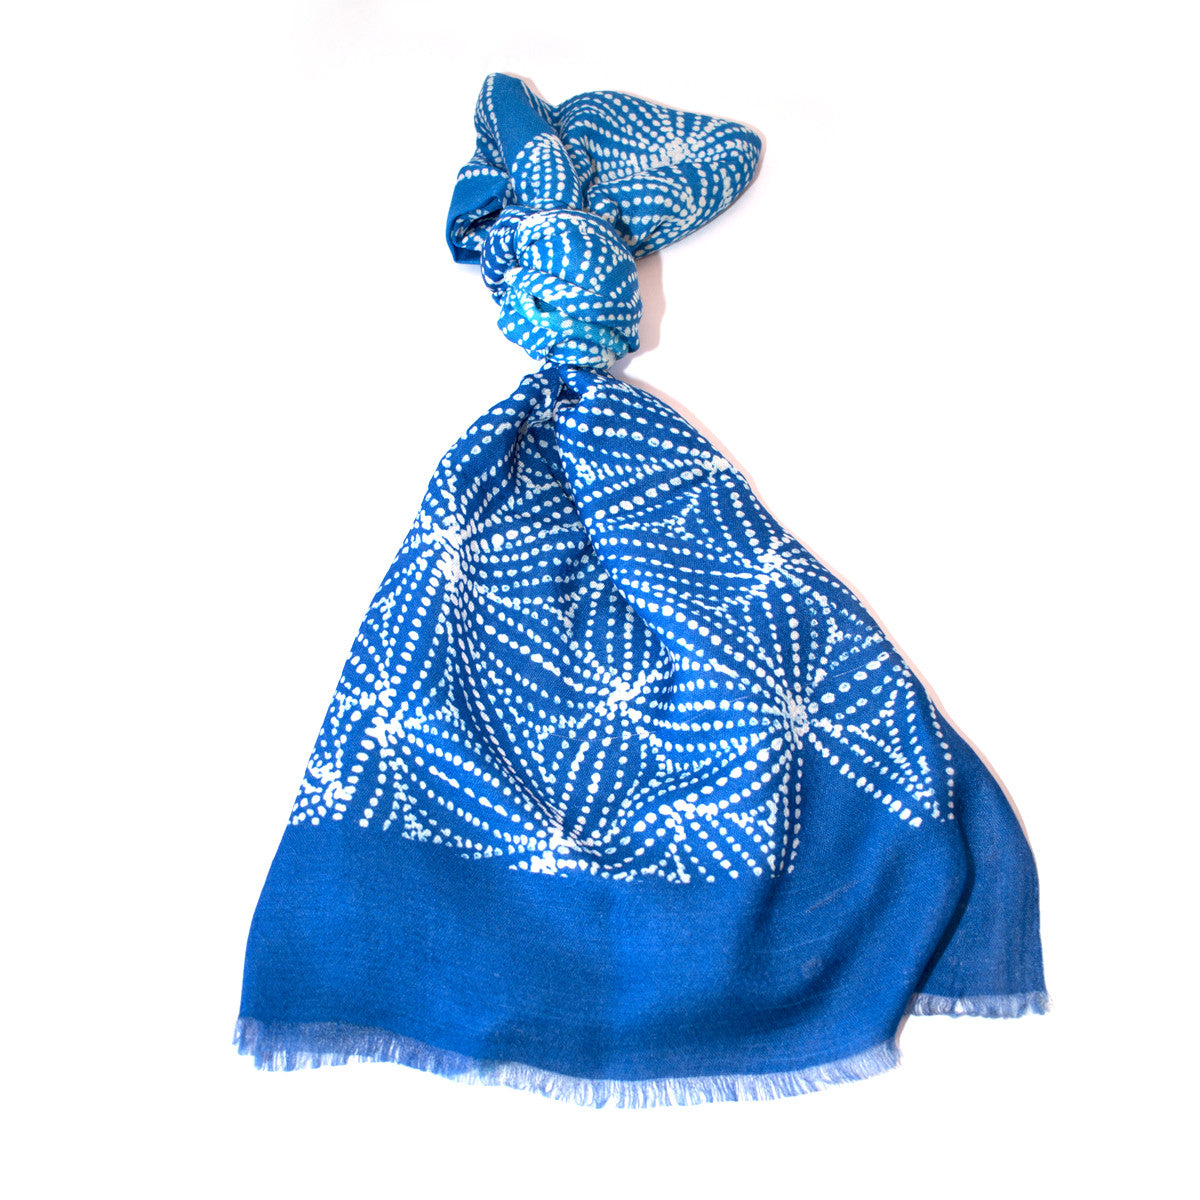 Pure Silk Scarf - Gathering Mussels Blue